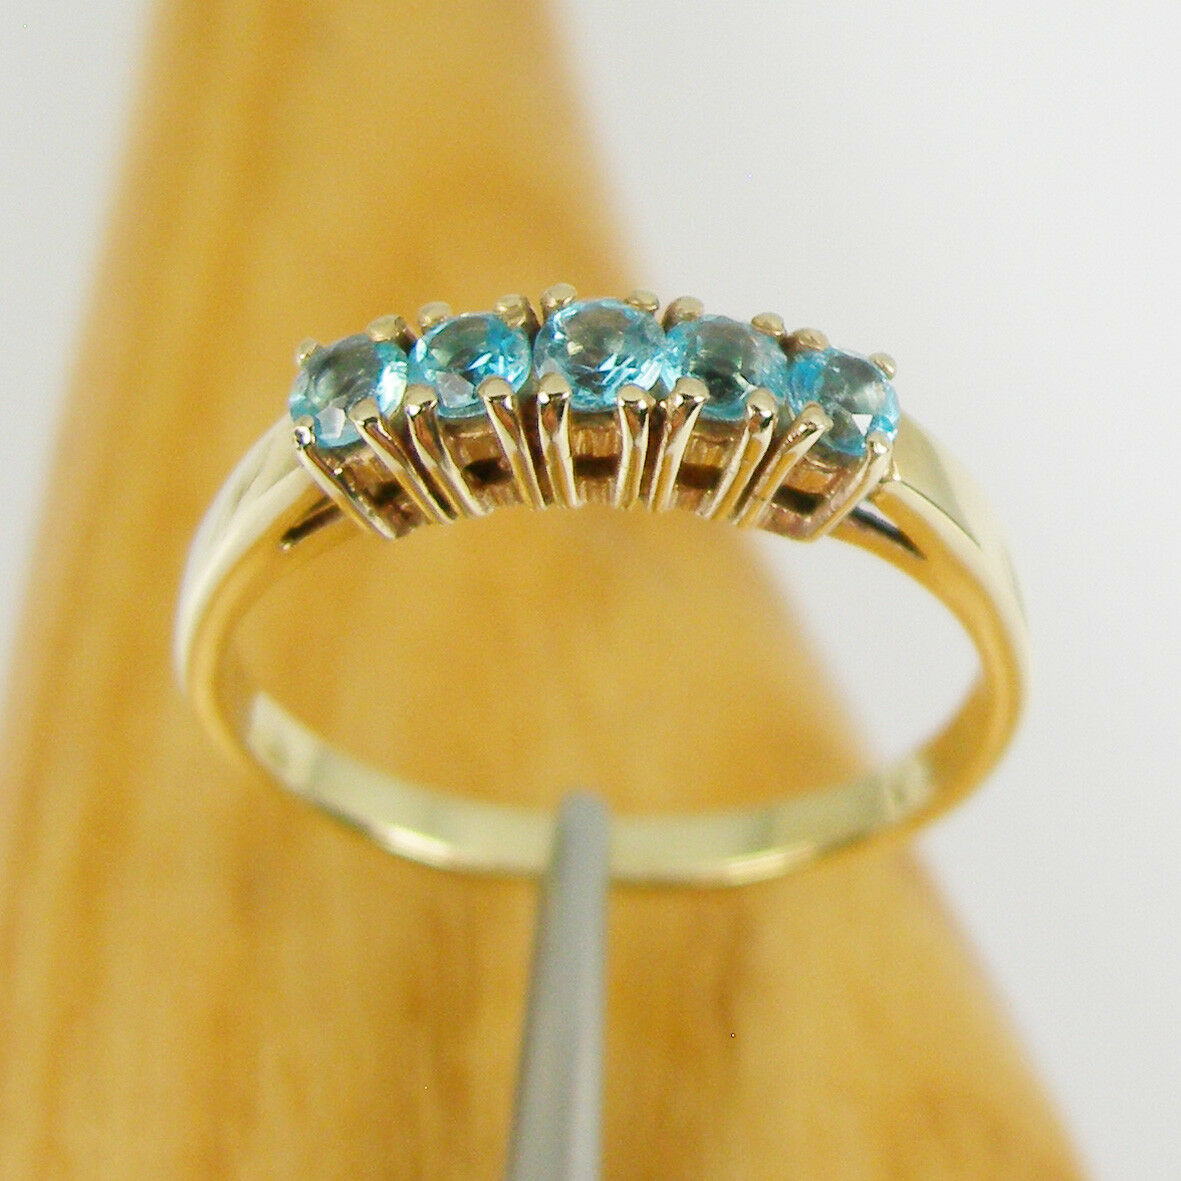 Natural bluee Topaz Gemstone 5 Stone Ring Genuine 375 9k 9ct Yellow gold, R530